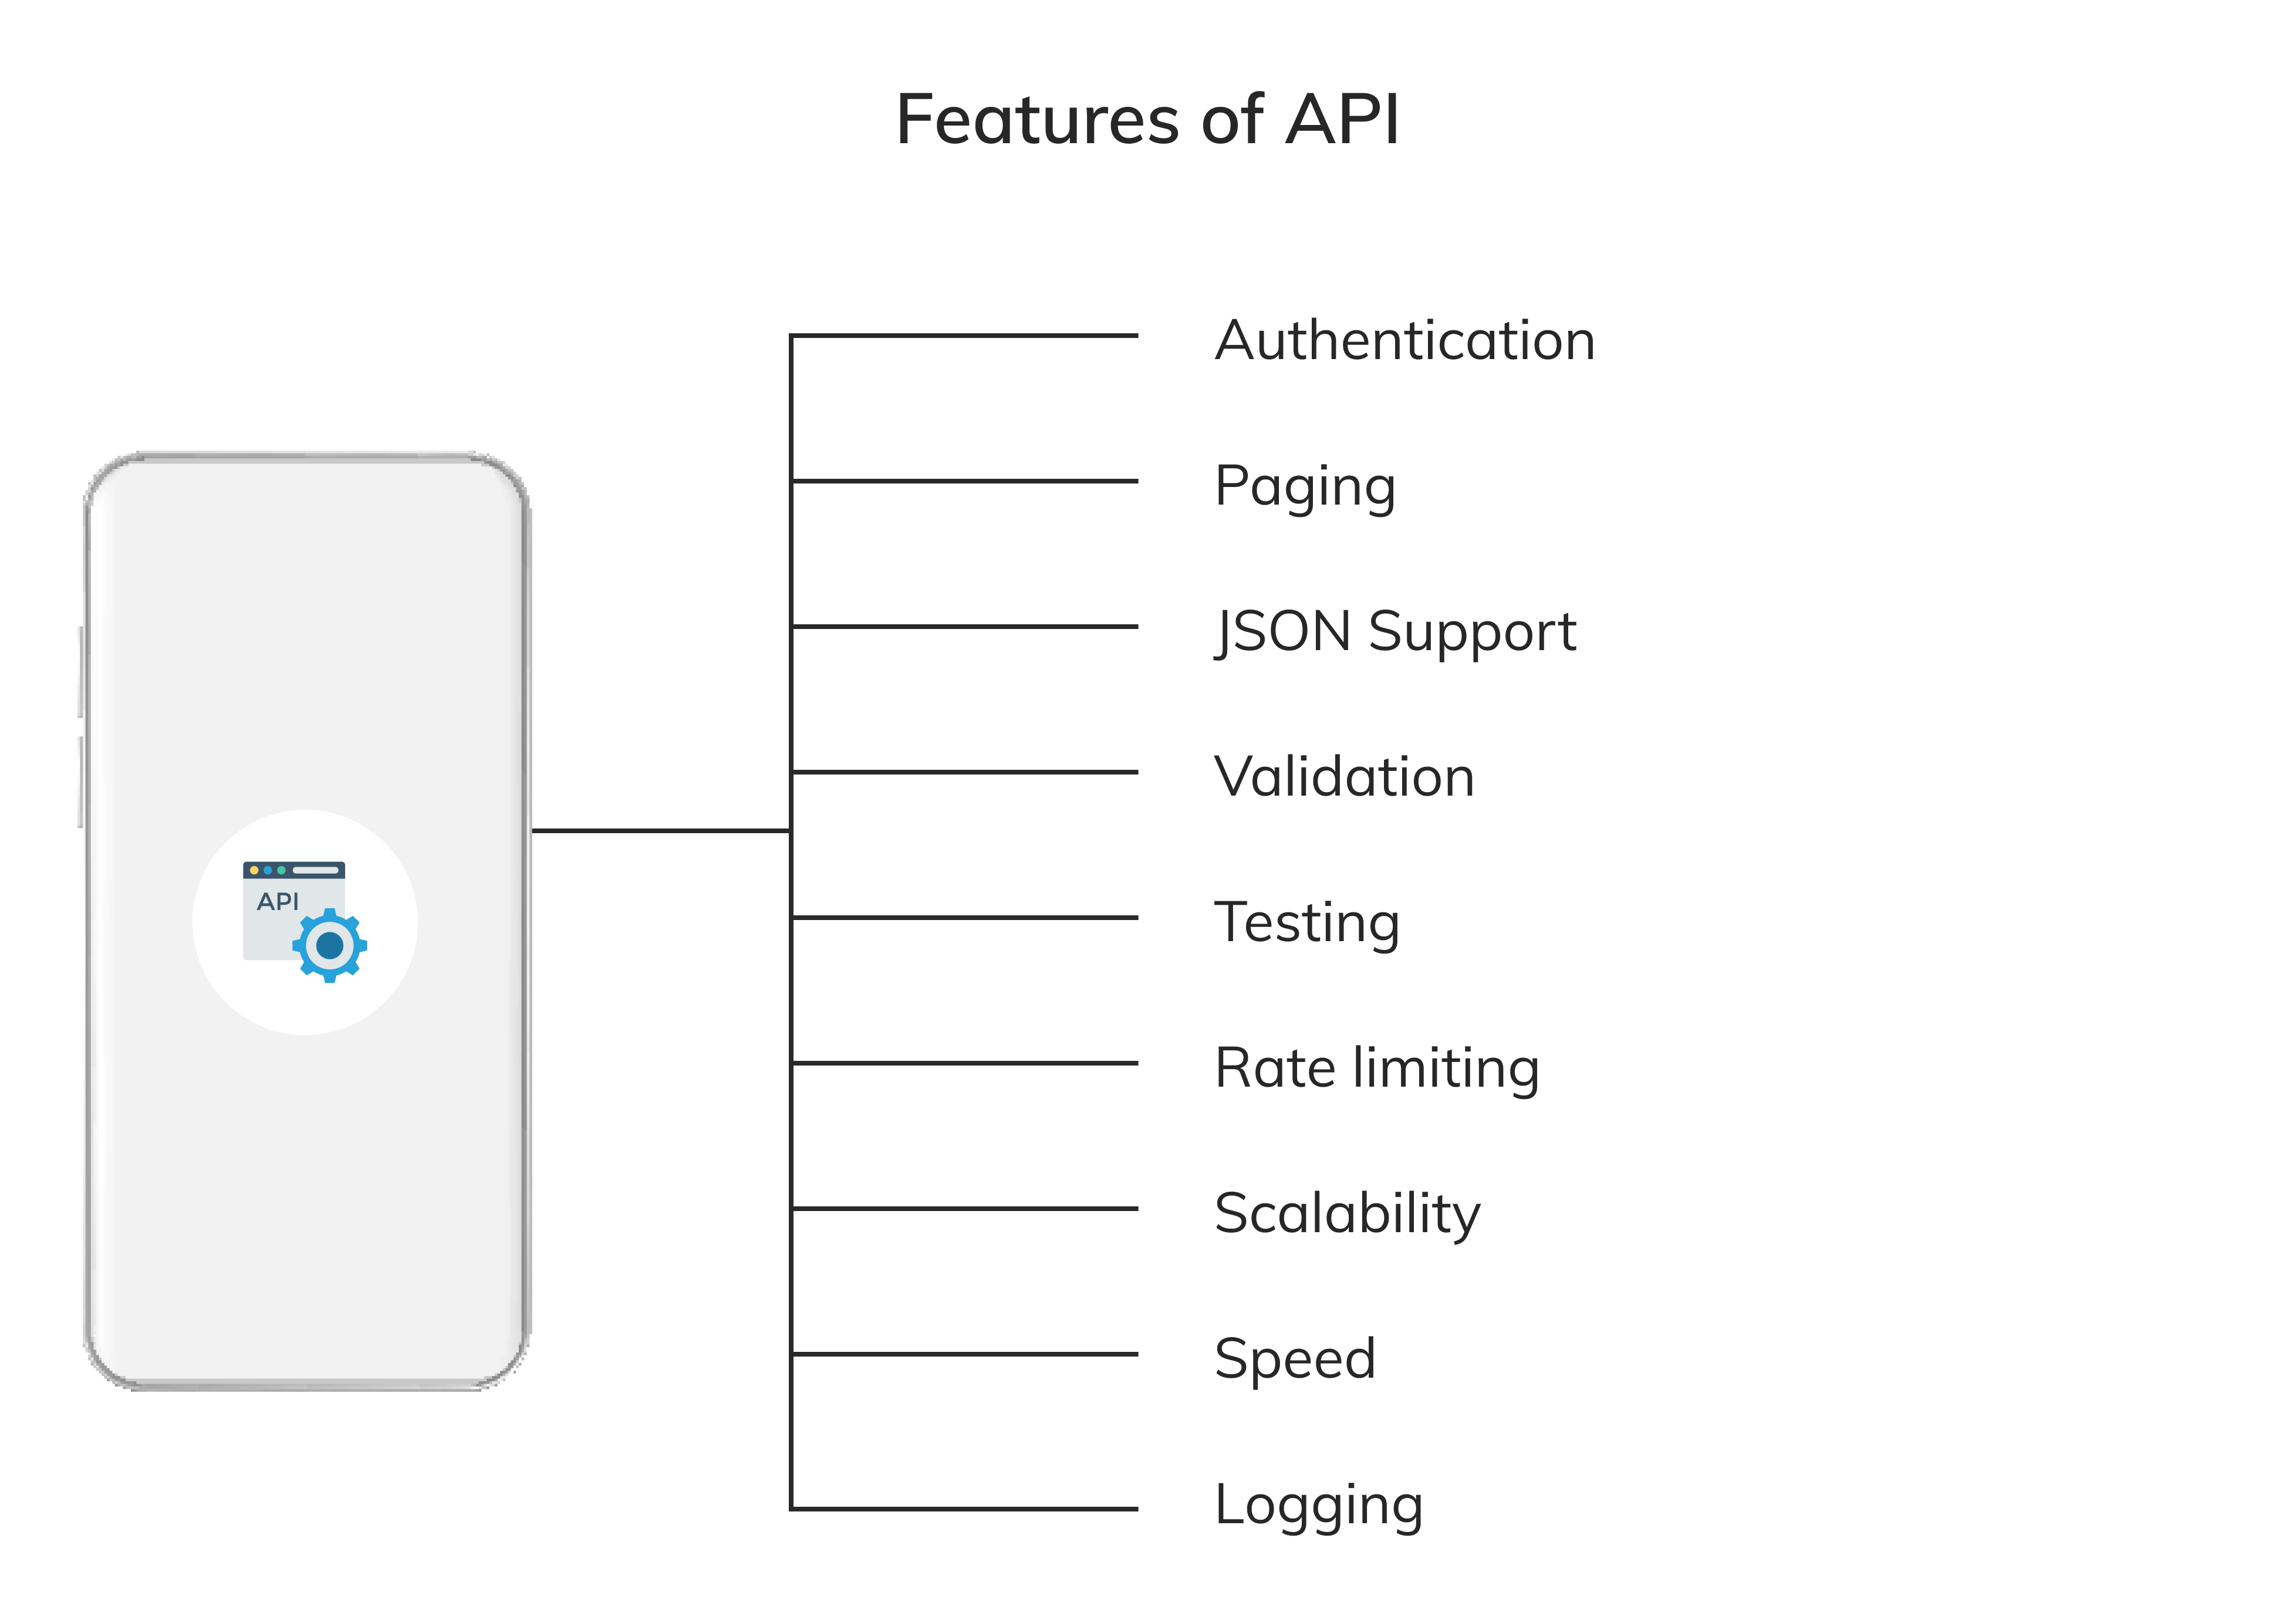 some listed features of API